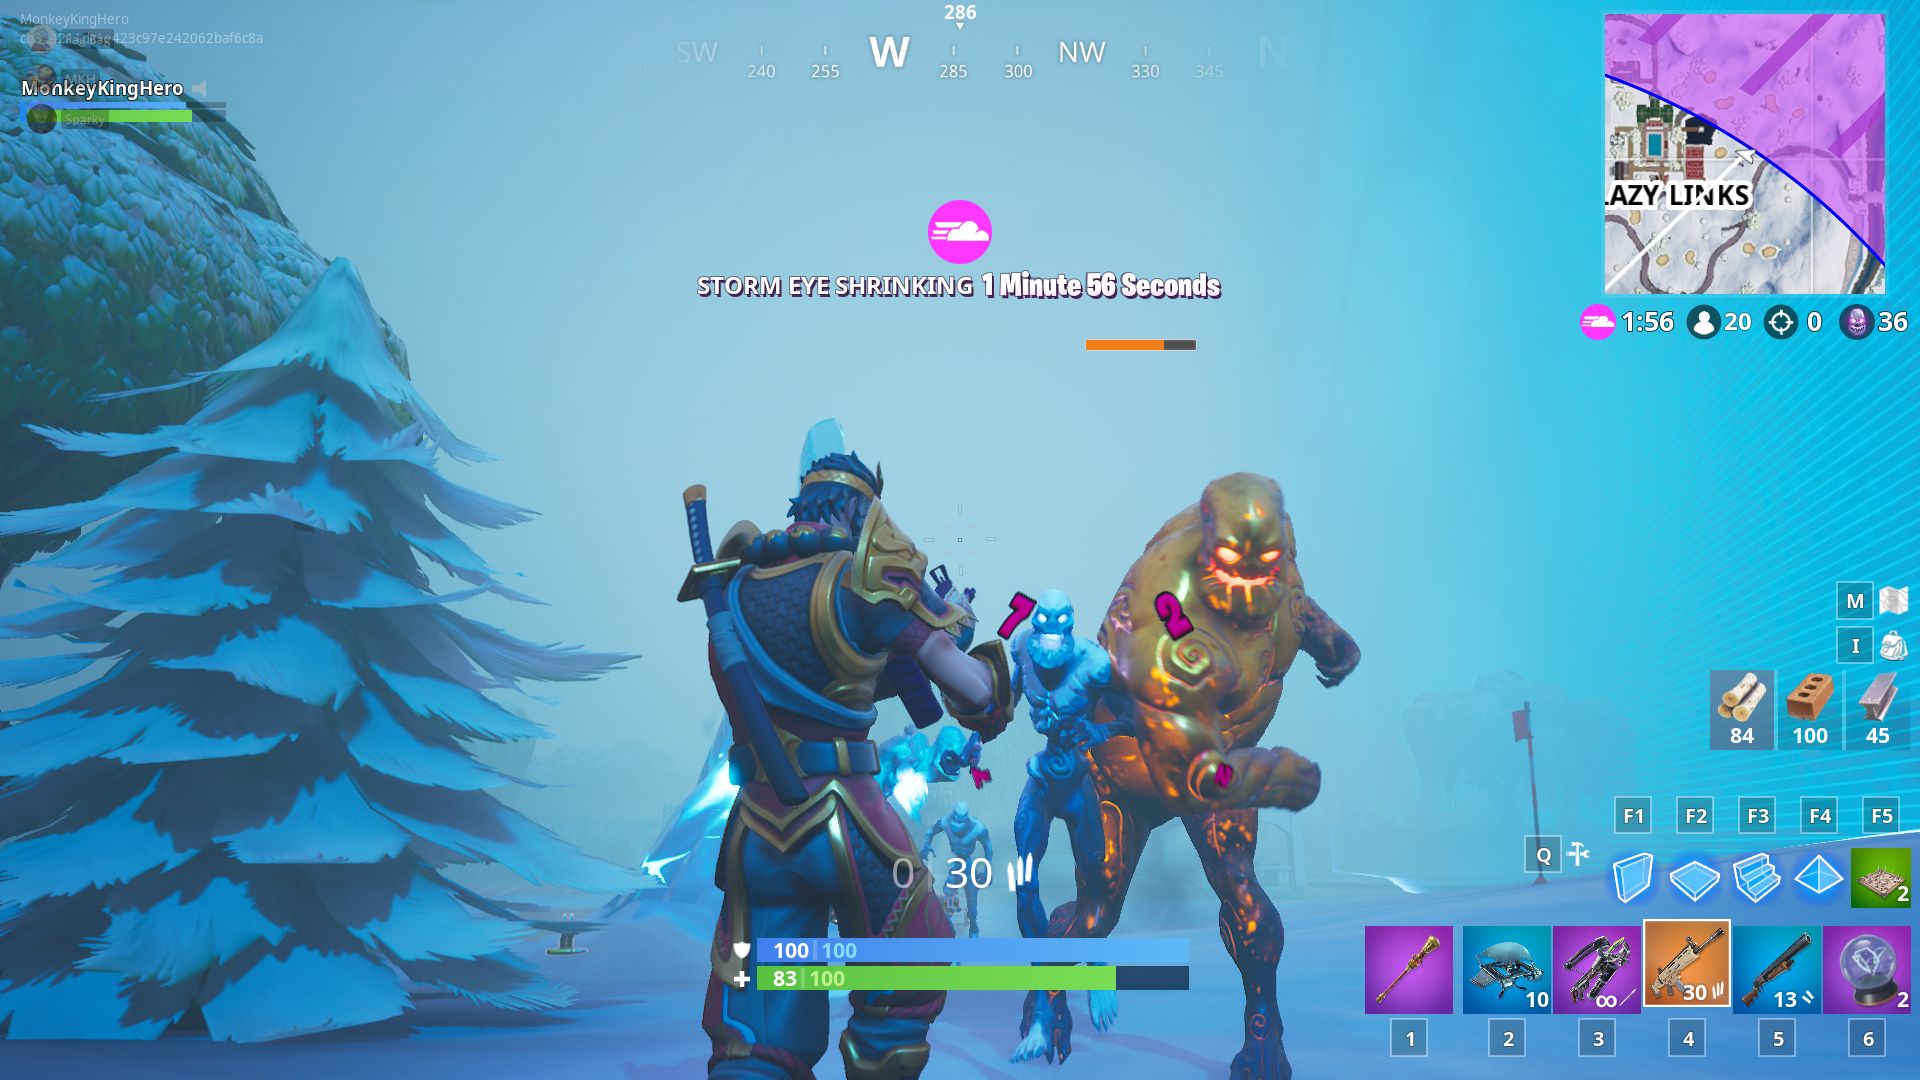 Golden Ice Brutes Appear To Be Spawning More Frequently In